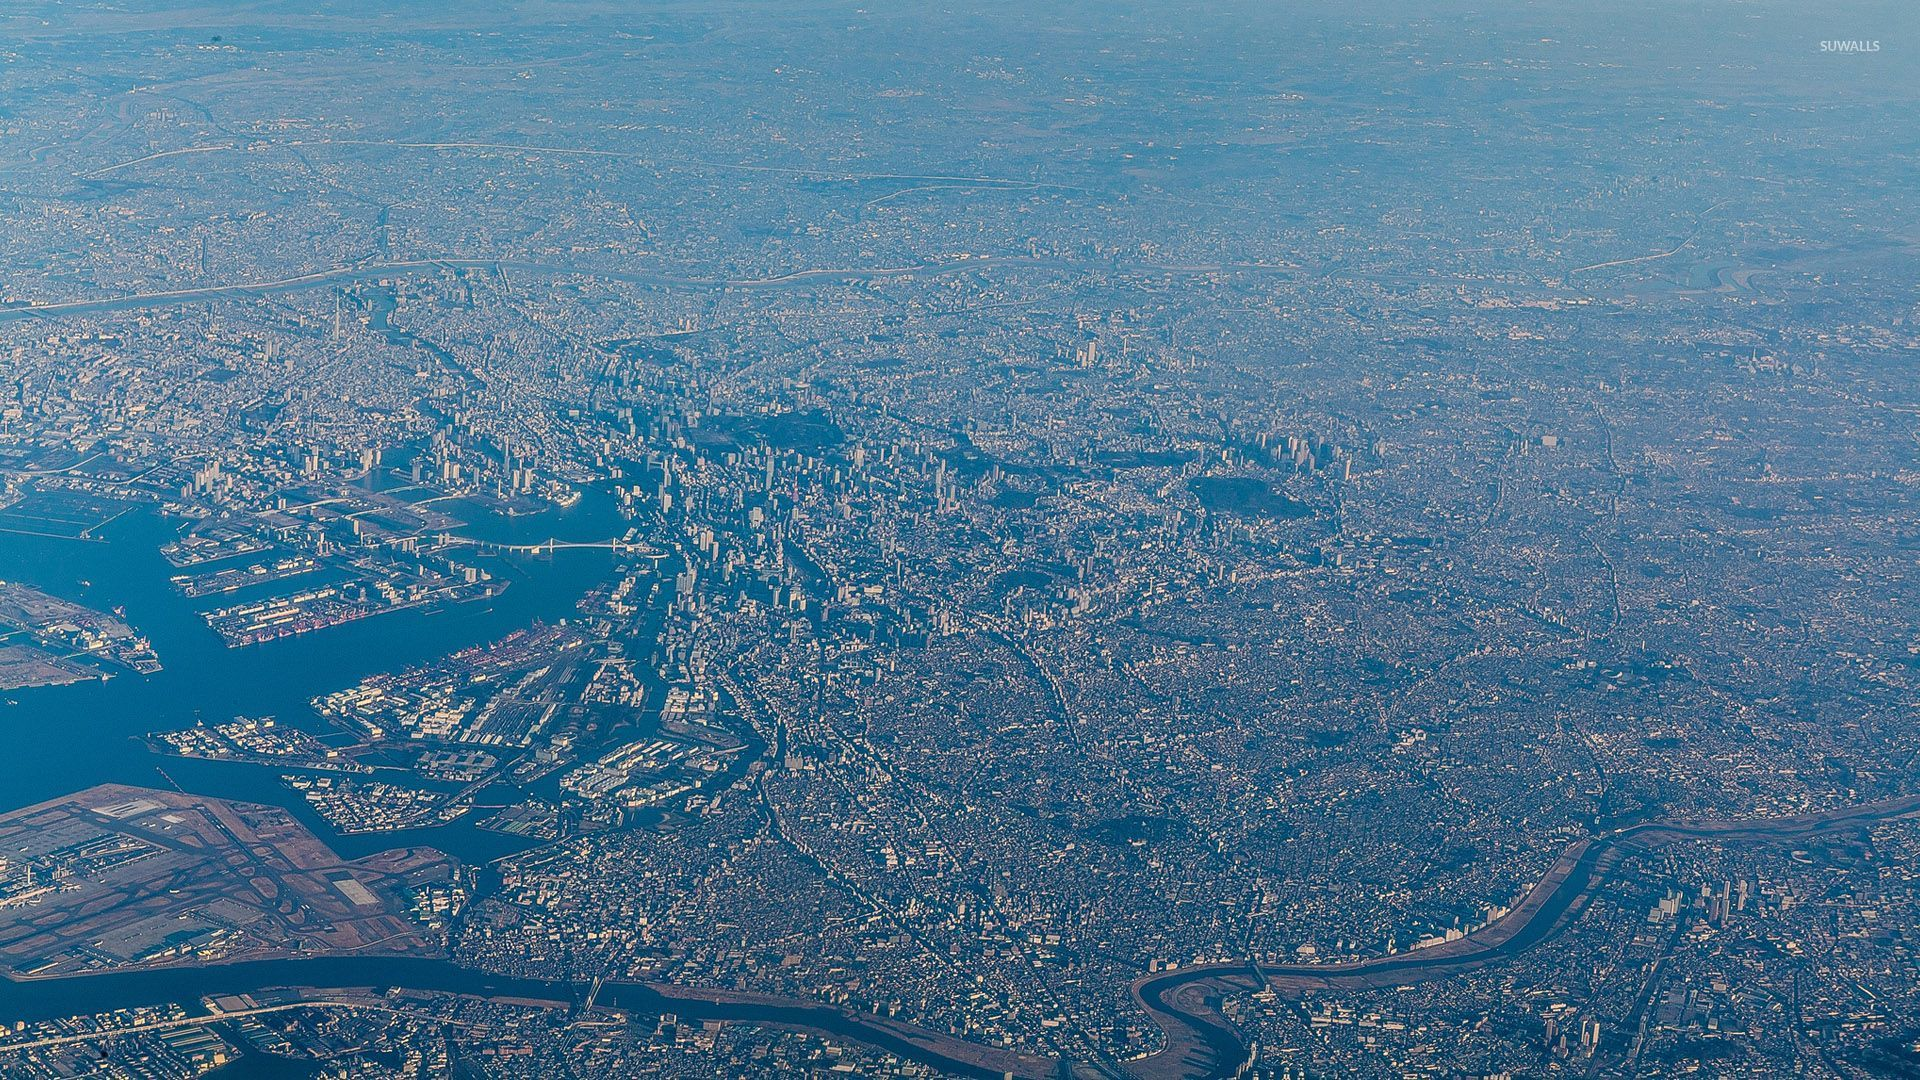 tokyo-aerial-view-30472-1920x1080 (1)